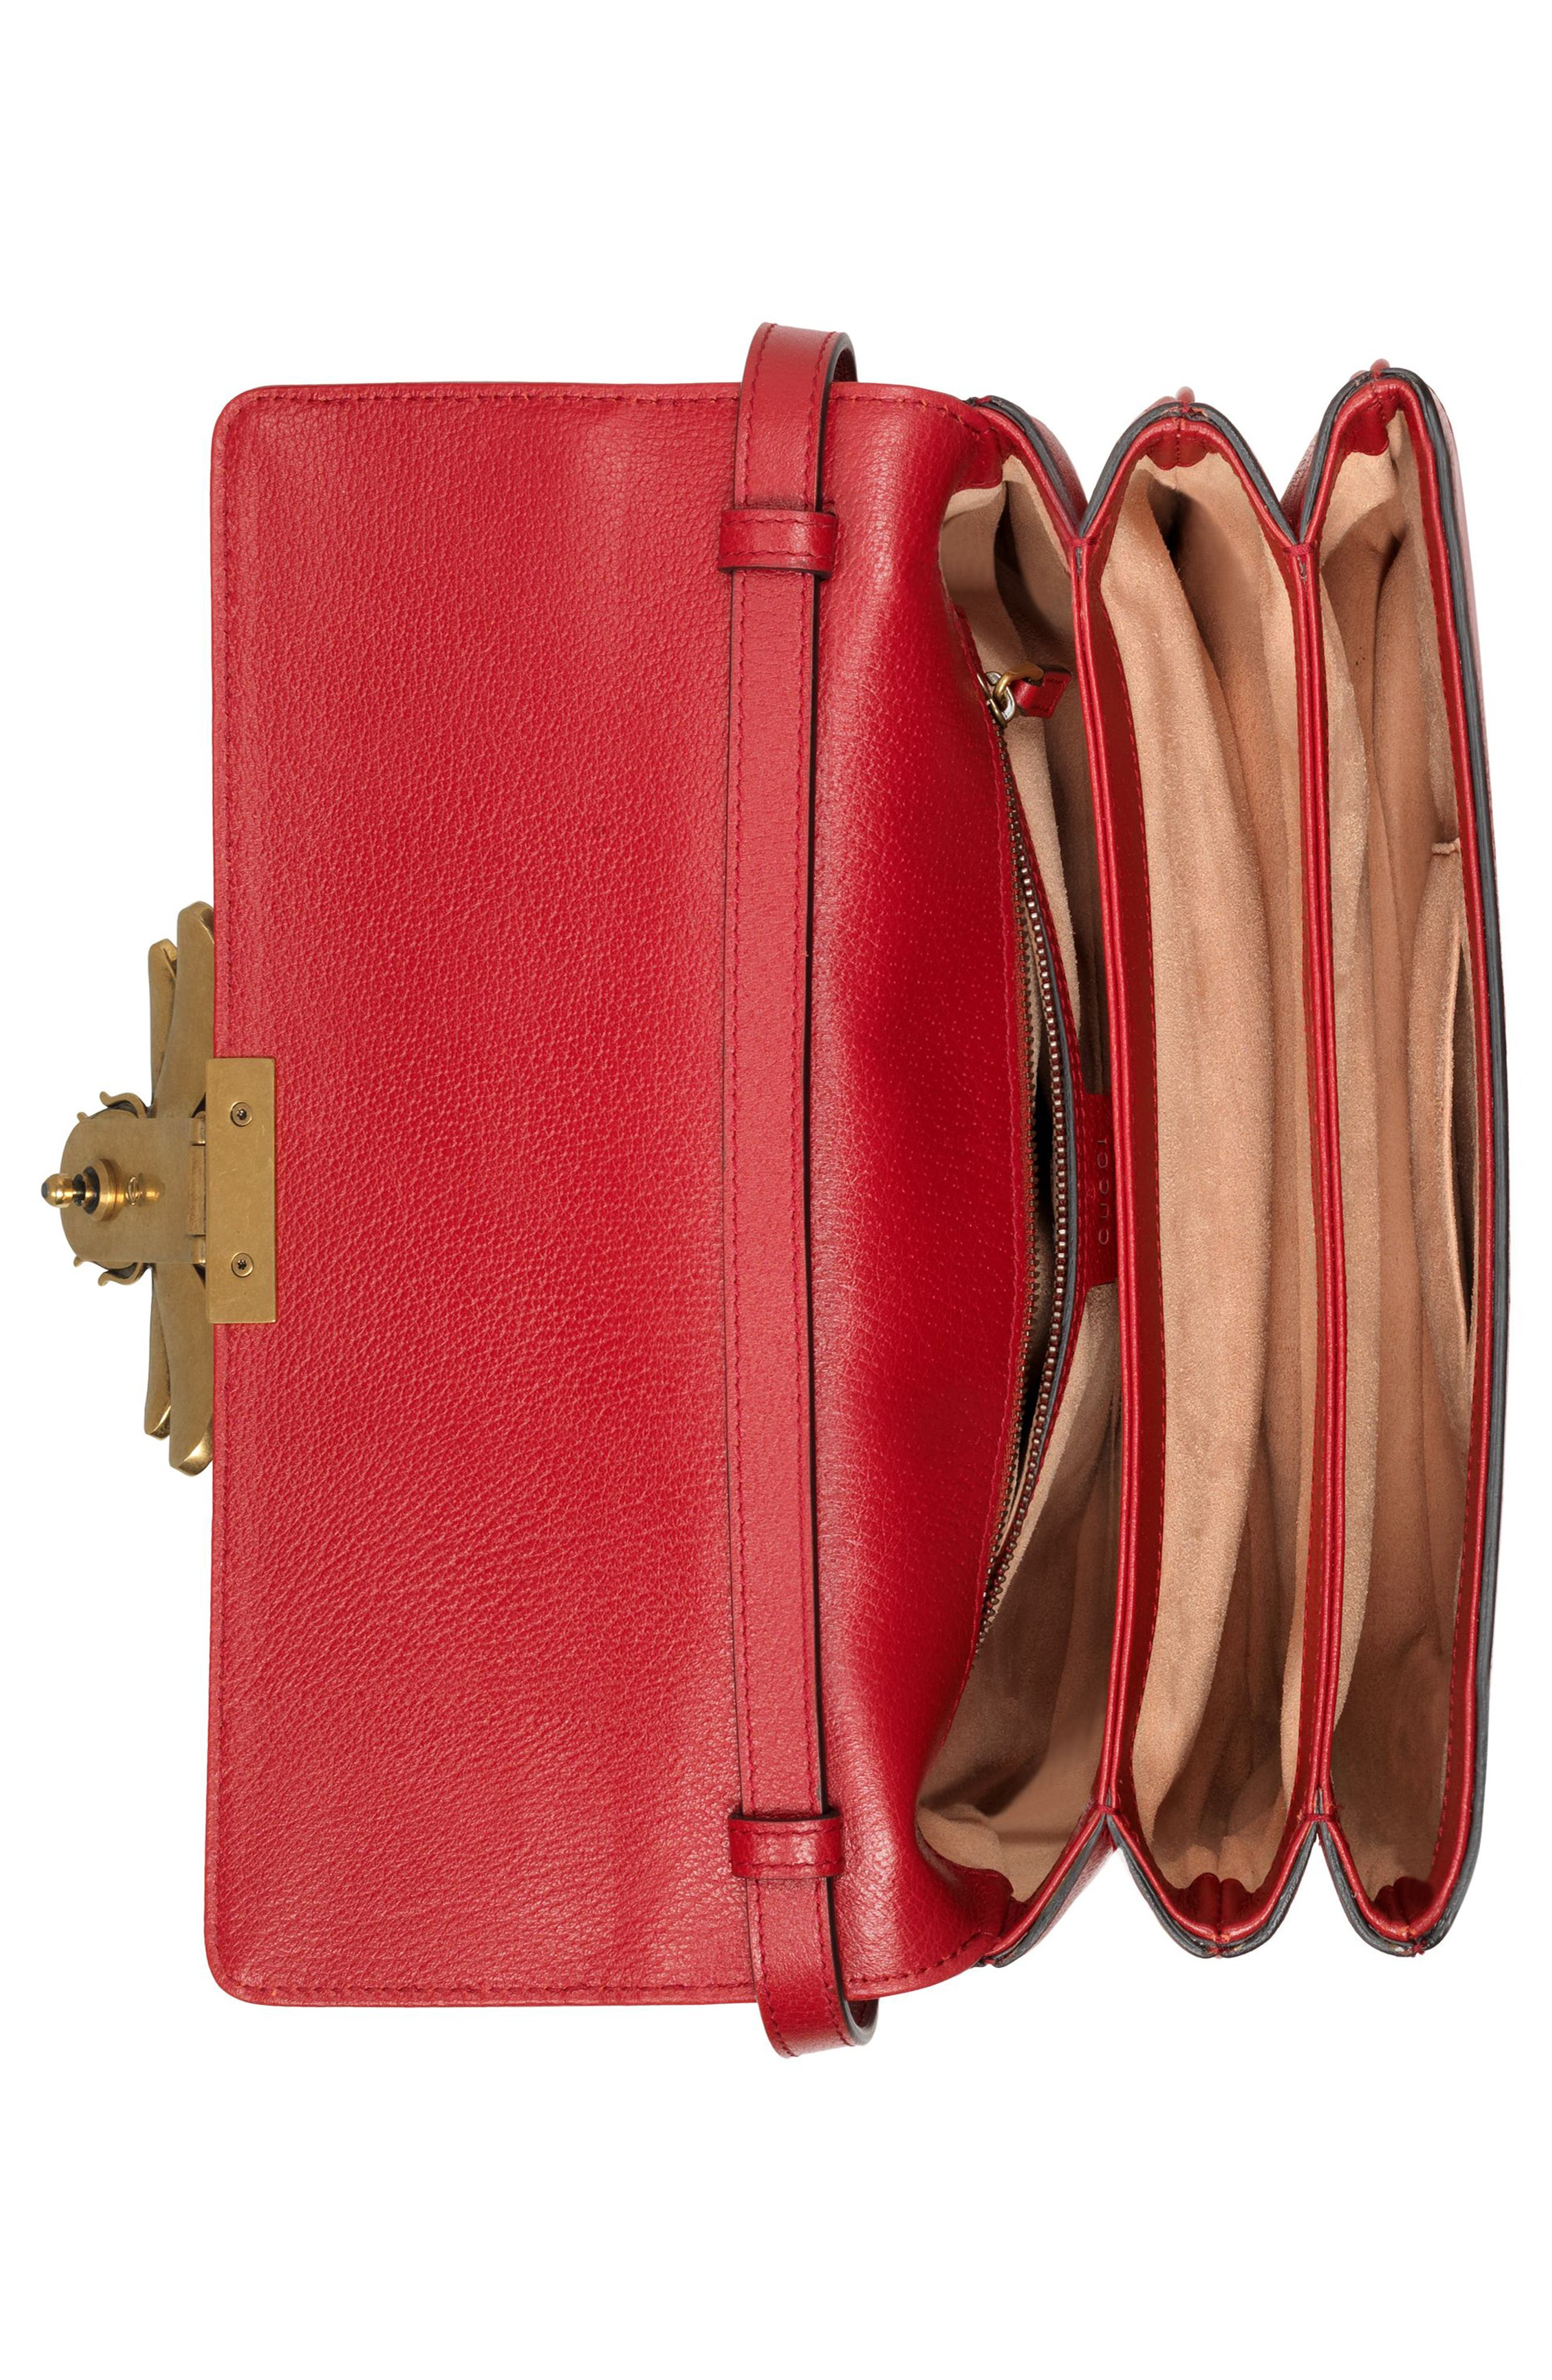 Queen Margaret GG Supreme Small Crossbody Bag,                             Alternate thumbnail 3, color,                             Beige Ebony/ Blue Red/ Ruby